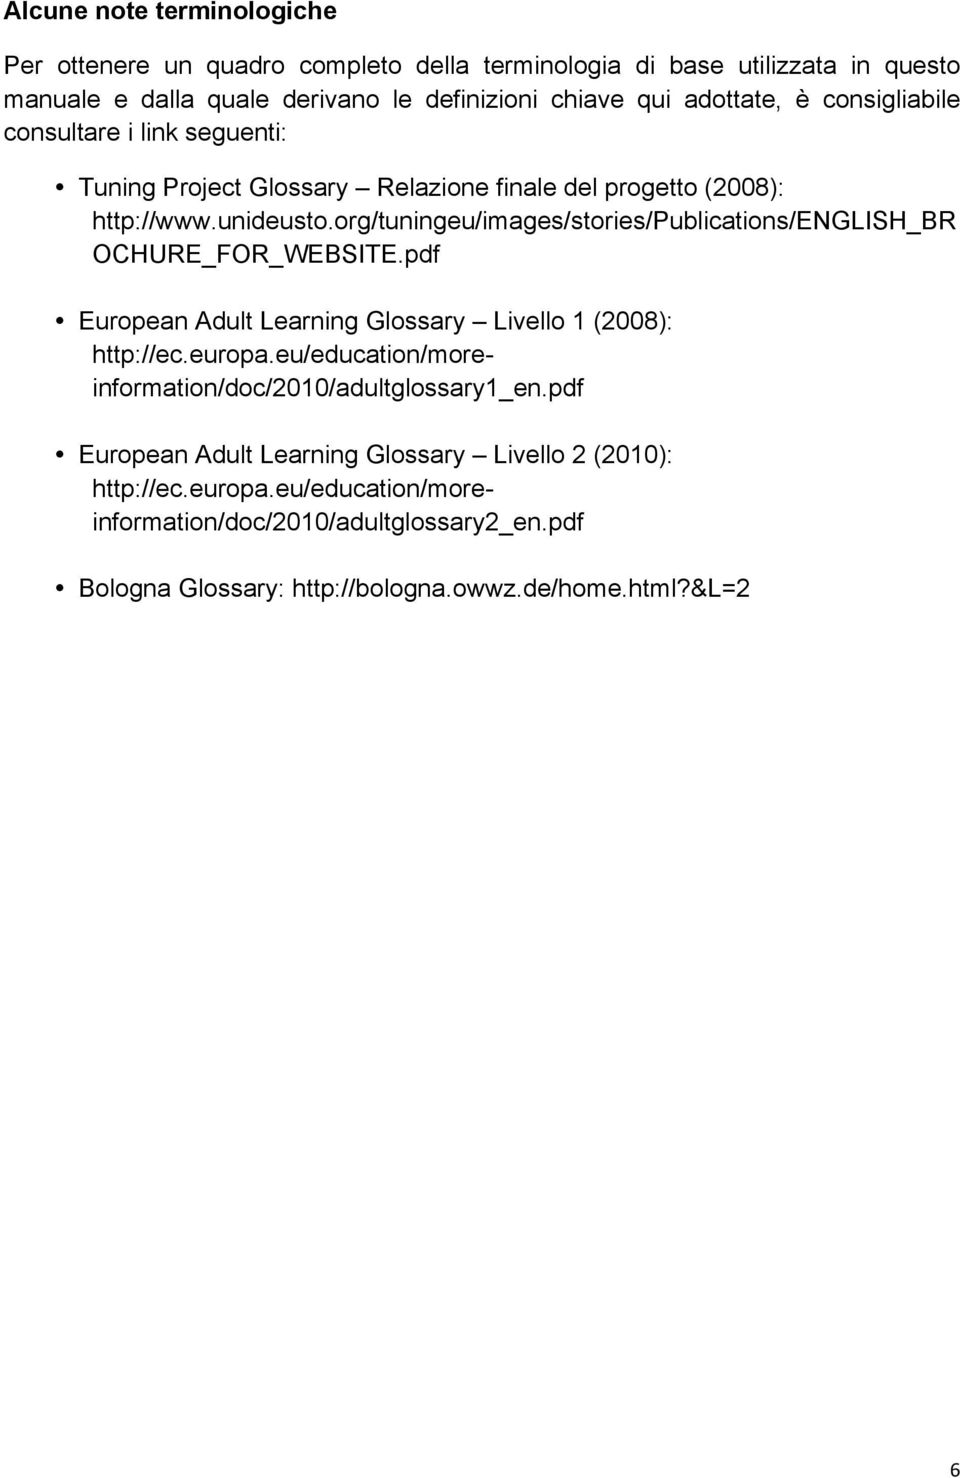 org/tuningeu/images/stories/publications/english_br OCHURE_FOR_WEBSITE.pdf European Adult Learning Glossary Livello 1 (2008): http://ec.europa.